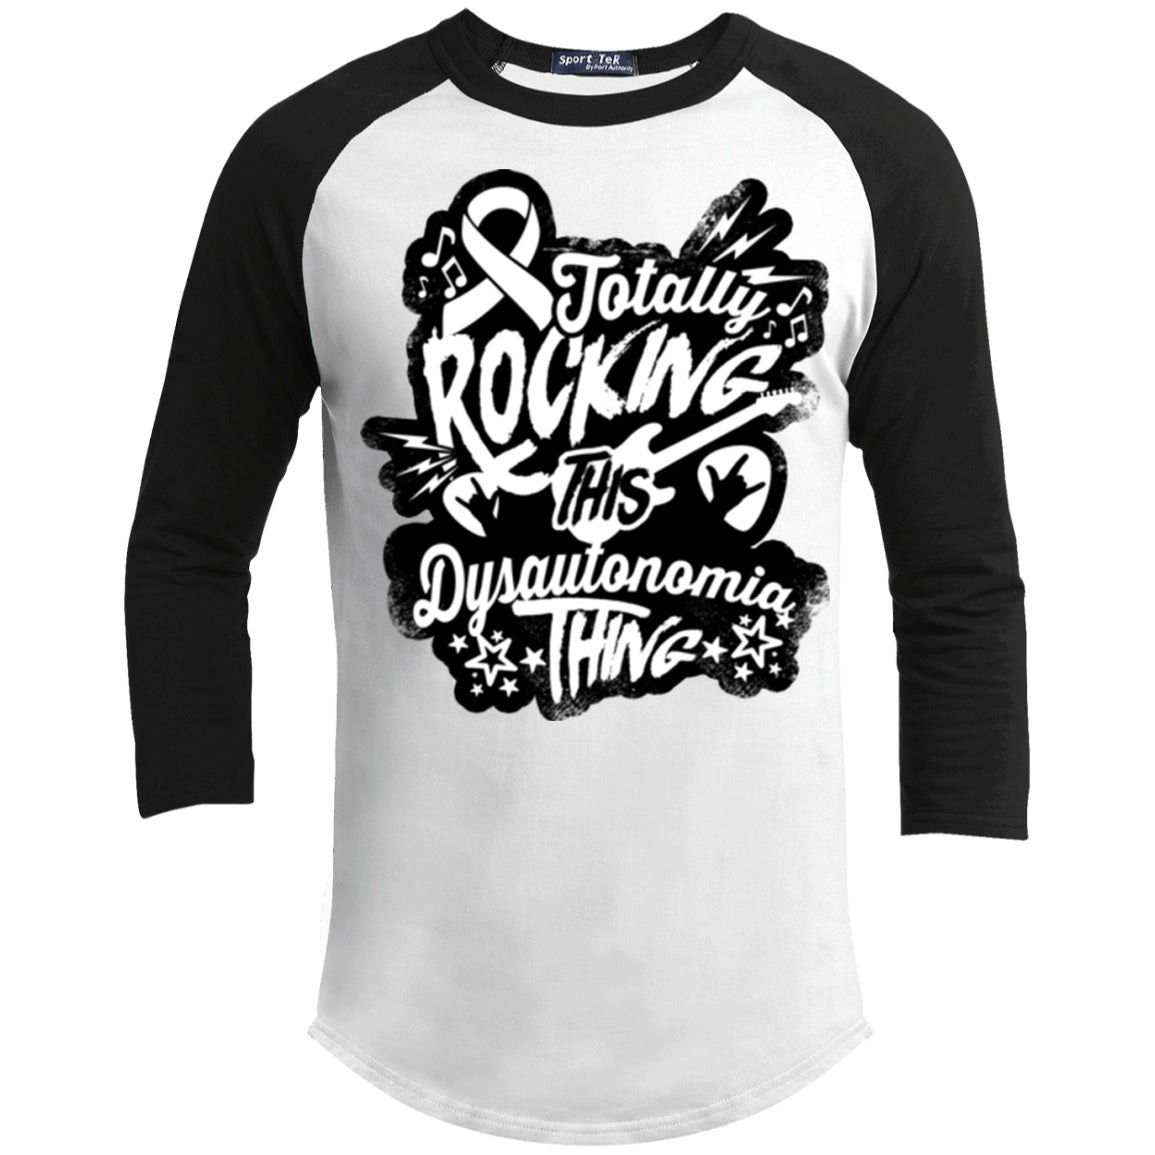 Rocking Dysautonomia Baseball Shirt - The Unchargeables